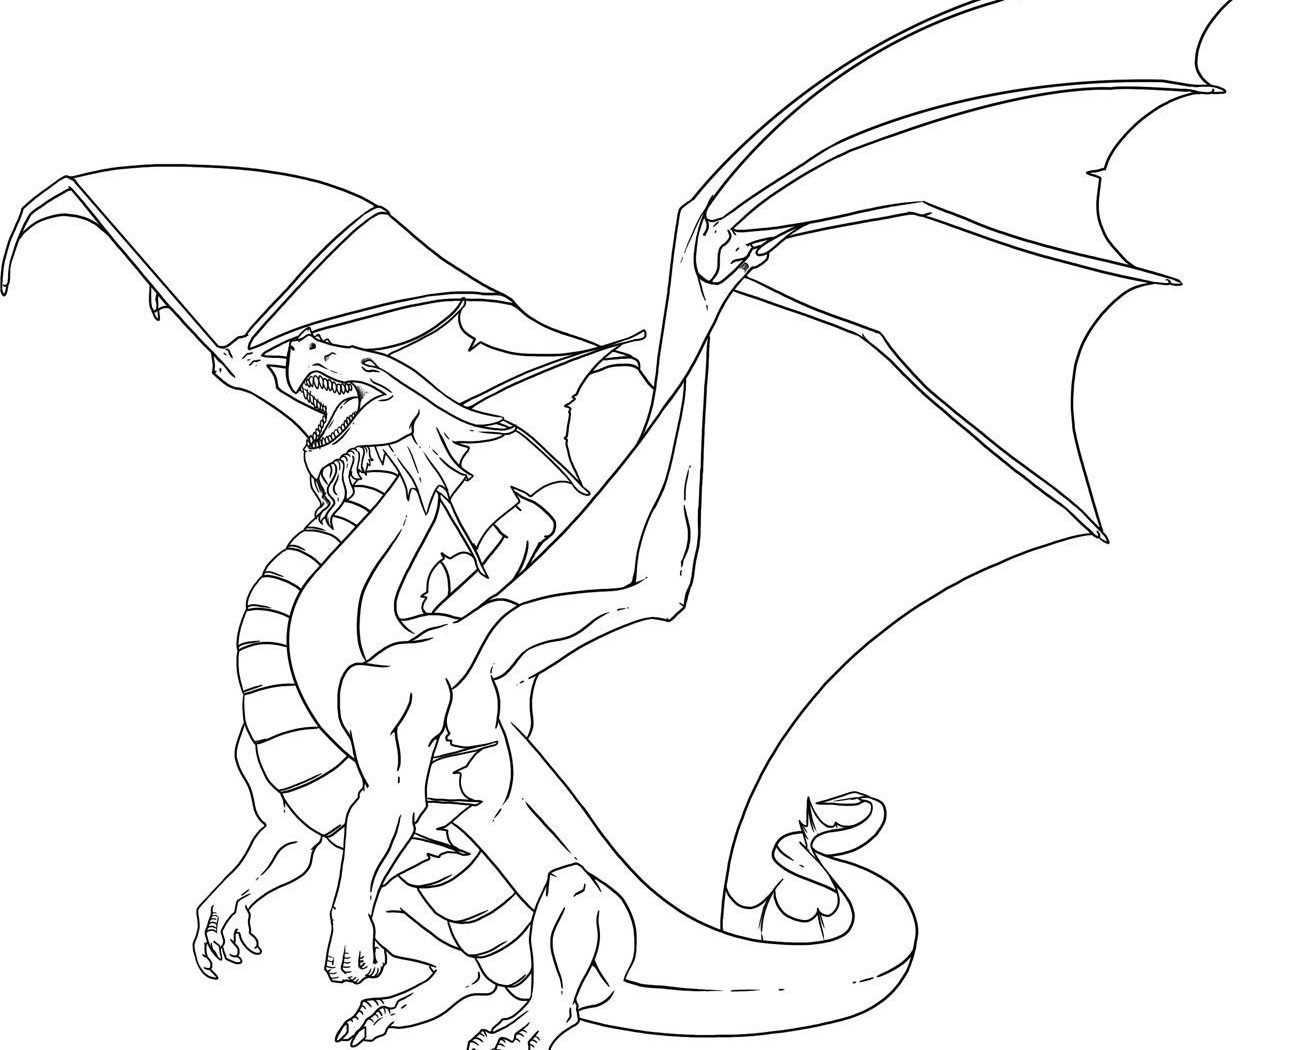 1300x1050 Dragon Coloring Pages To Print Drawing For Adults Animals